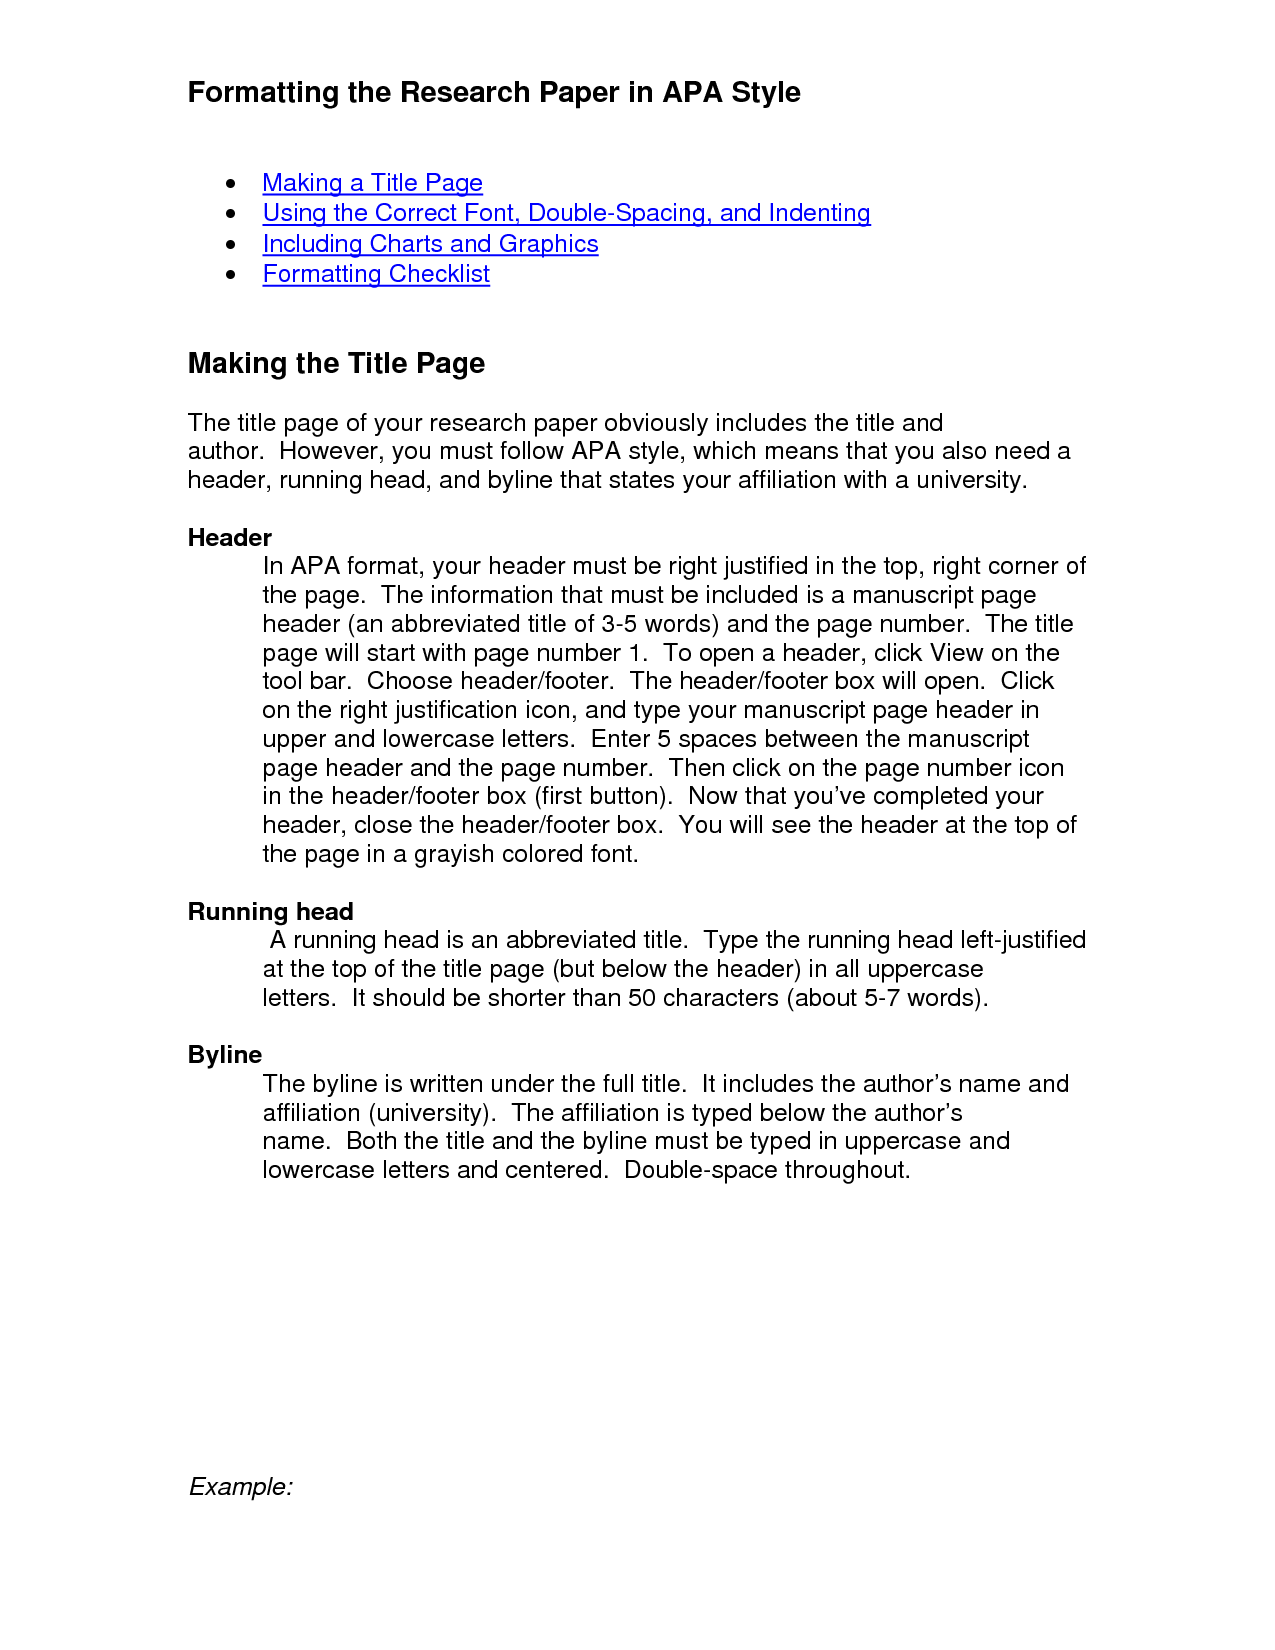 005 Research Paper 2mefq6rl5g How To Make Citations In Unusual A Apa Full